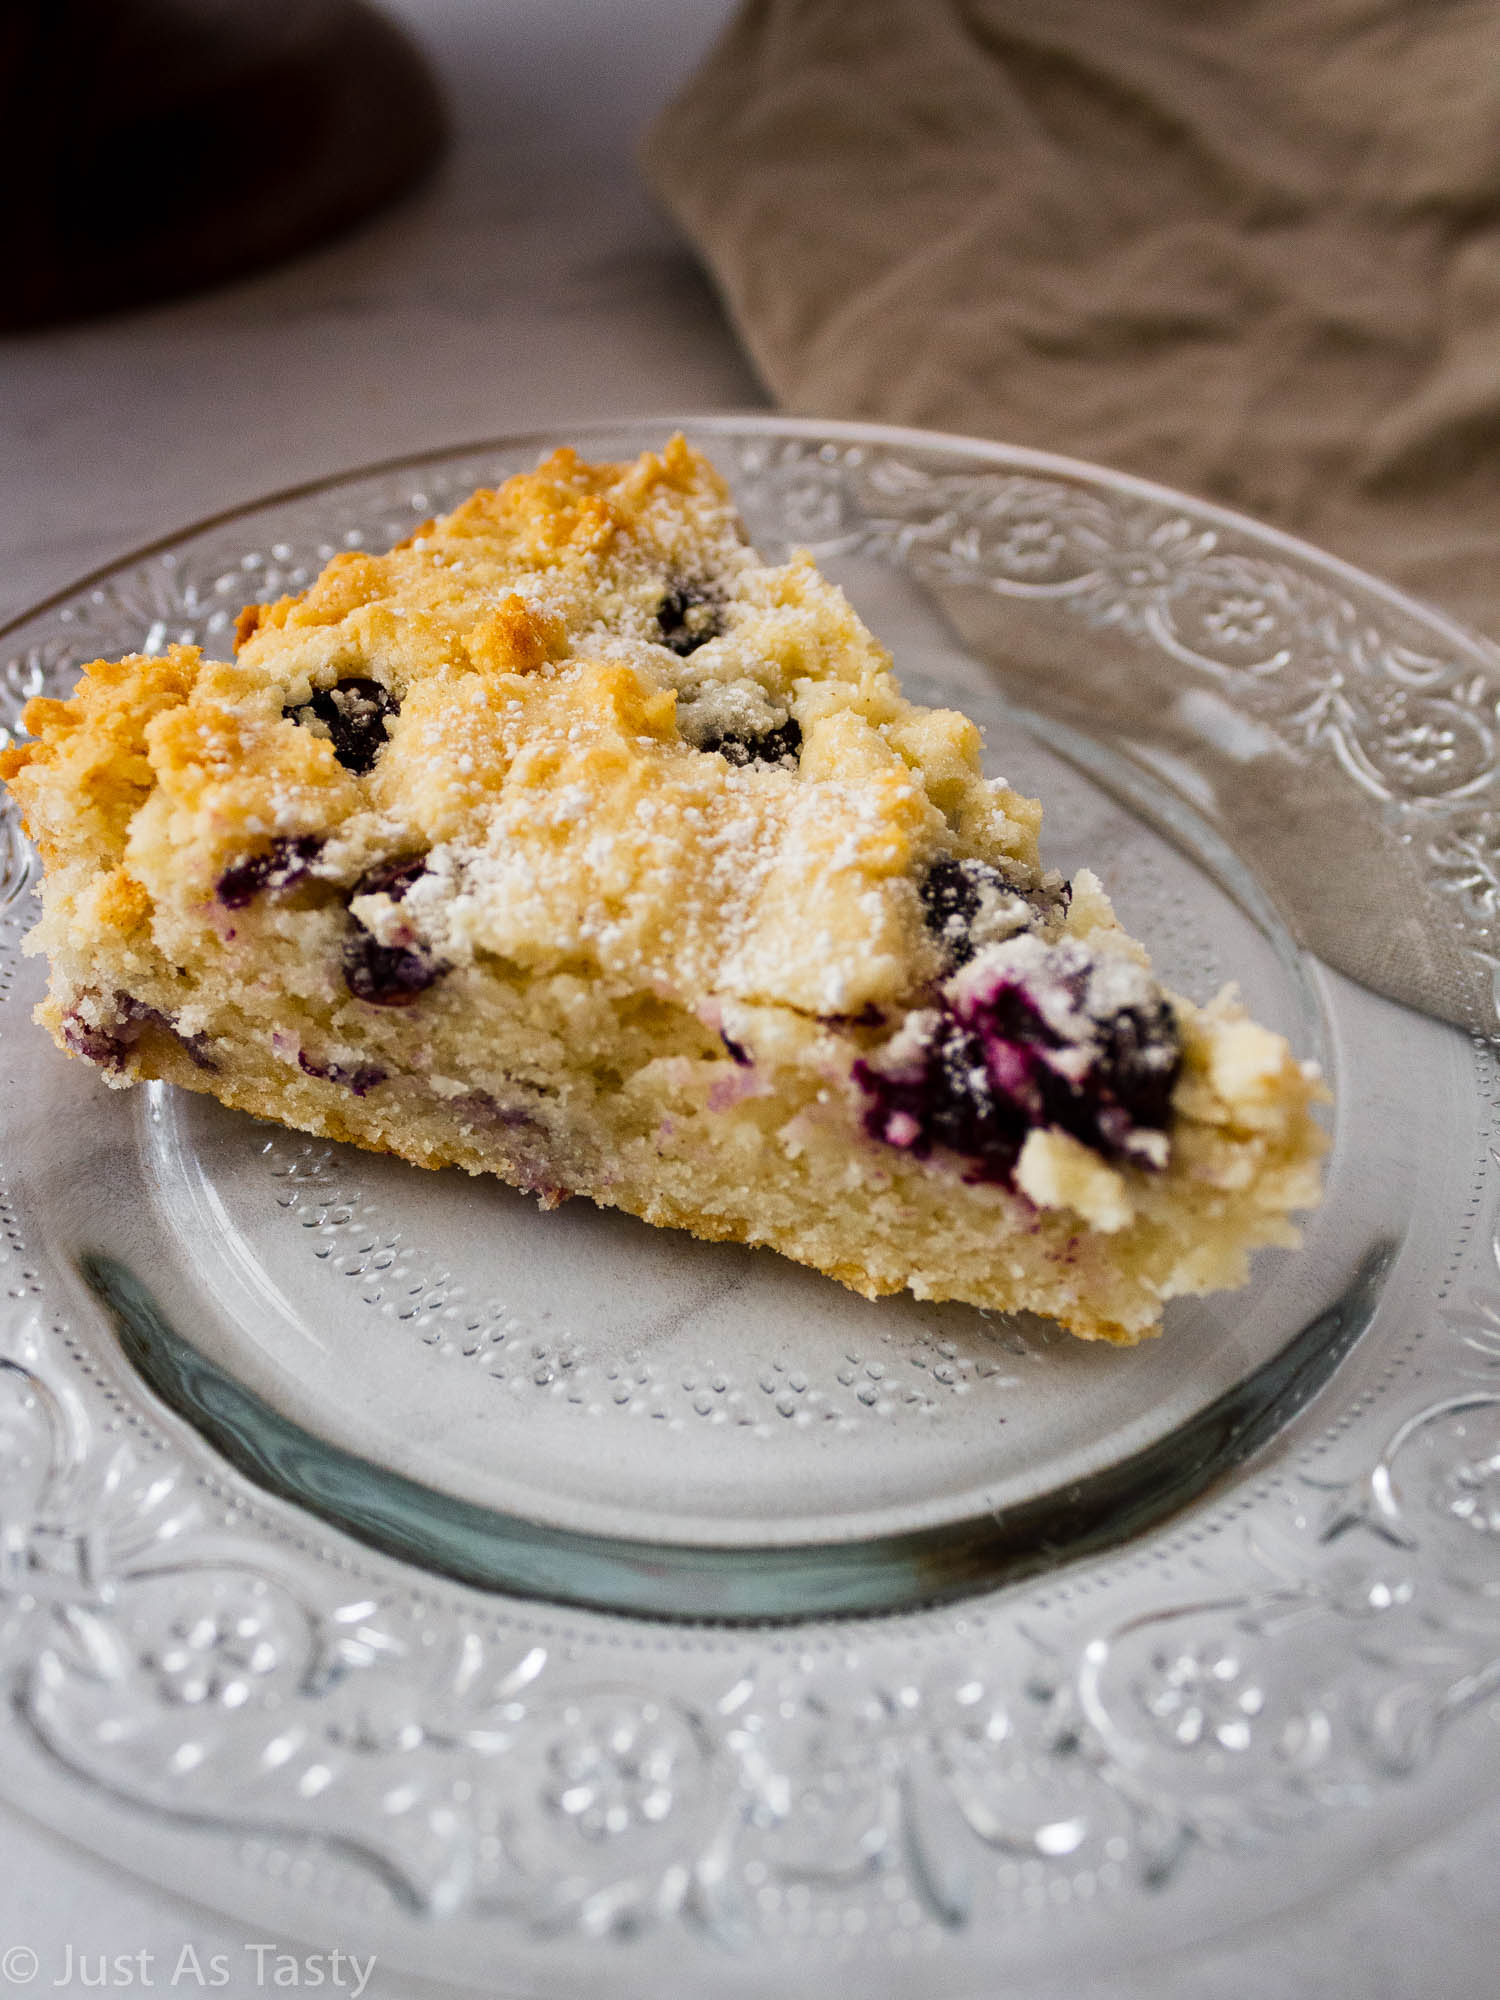 Slice of blueberry cake on a glass plate.